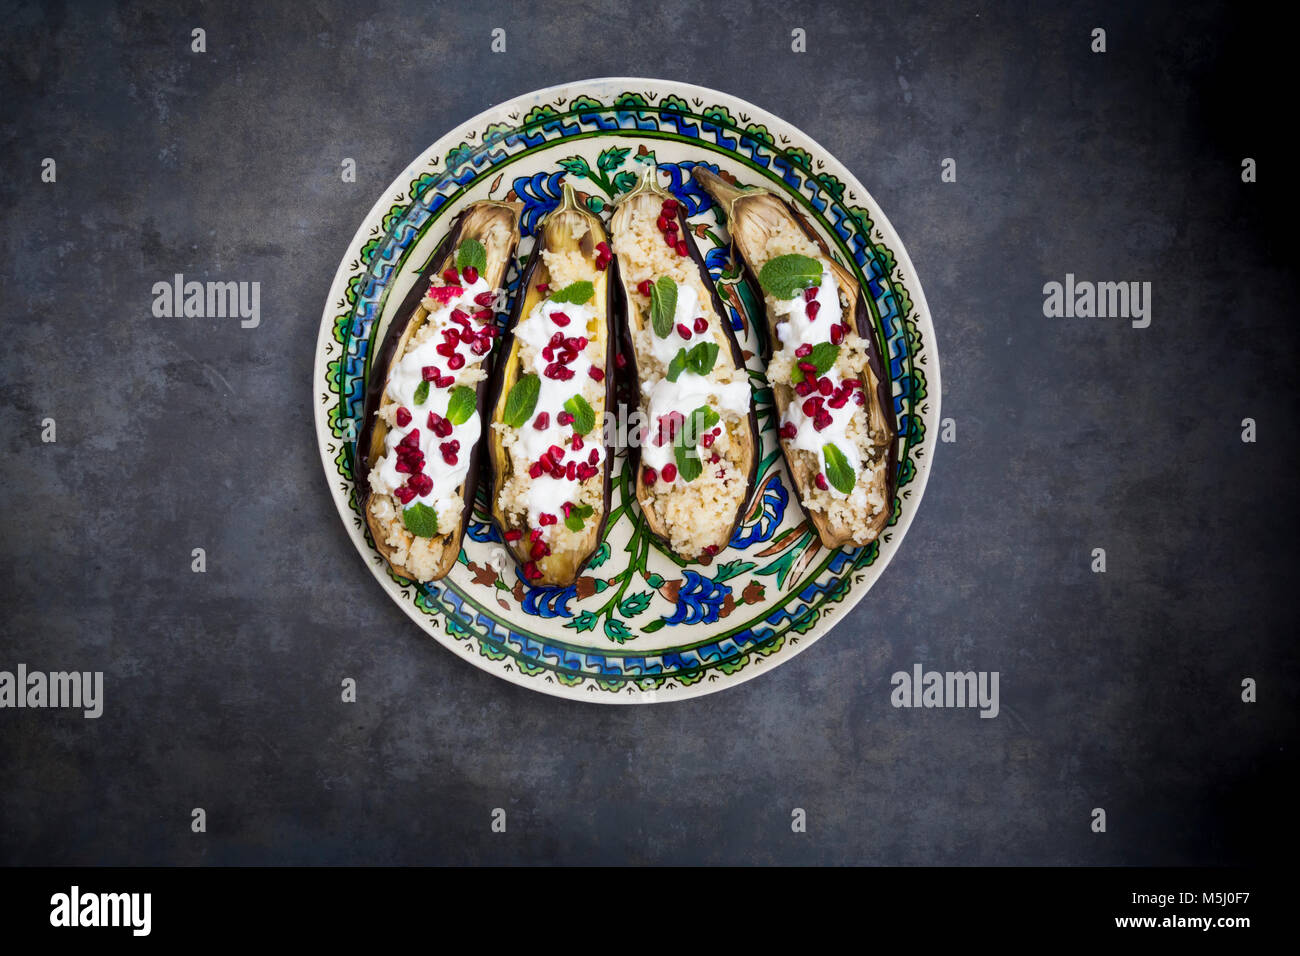 Filled aubergine, couscous, yogurt sauce, mint and pomegranate seeds - Stock Image